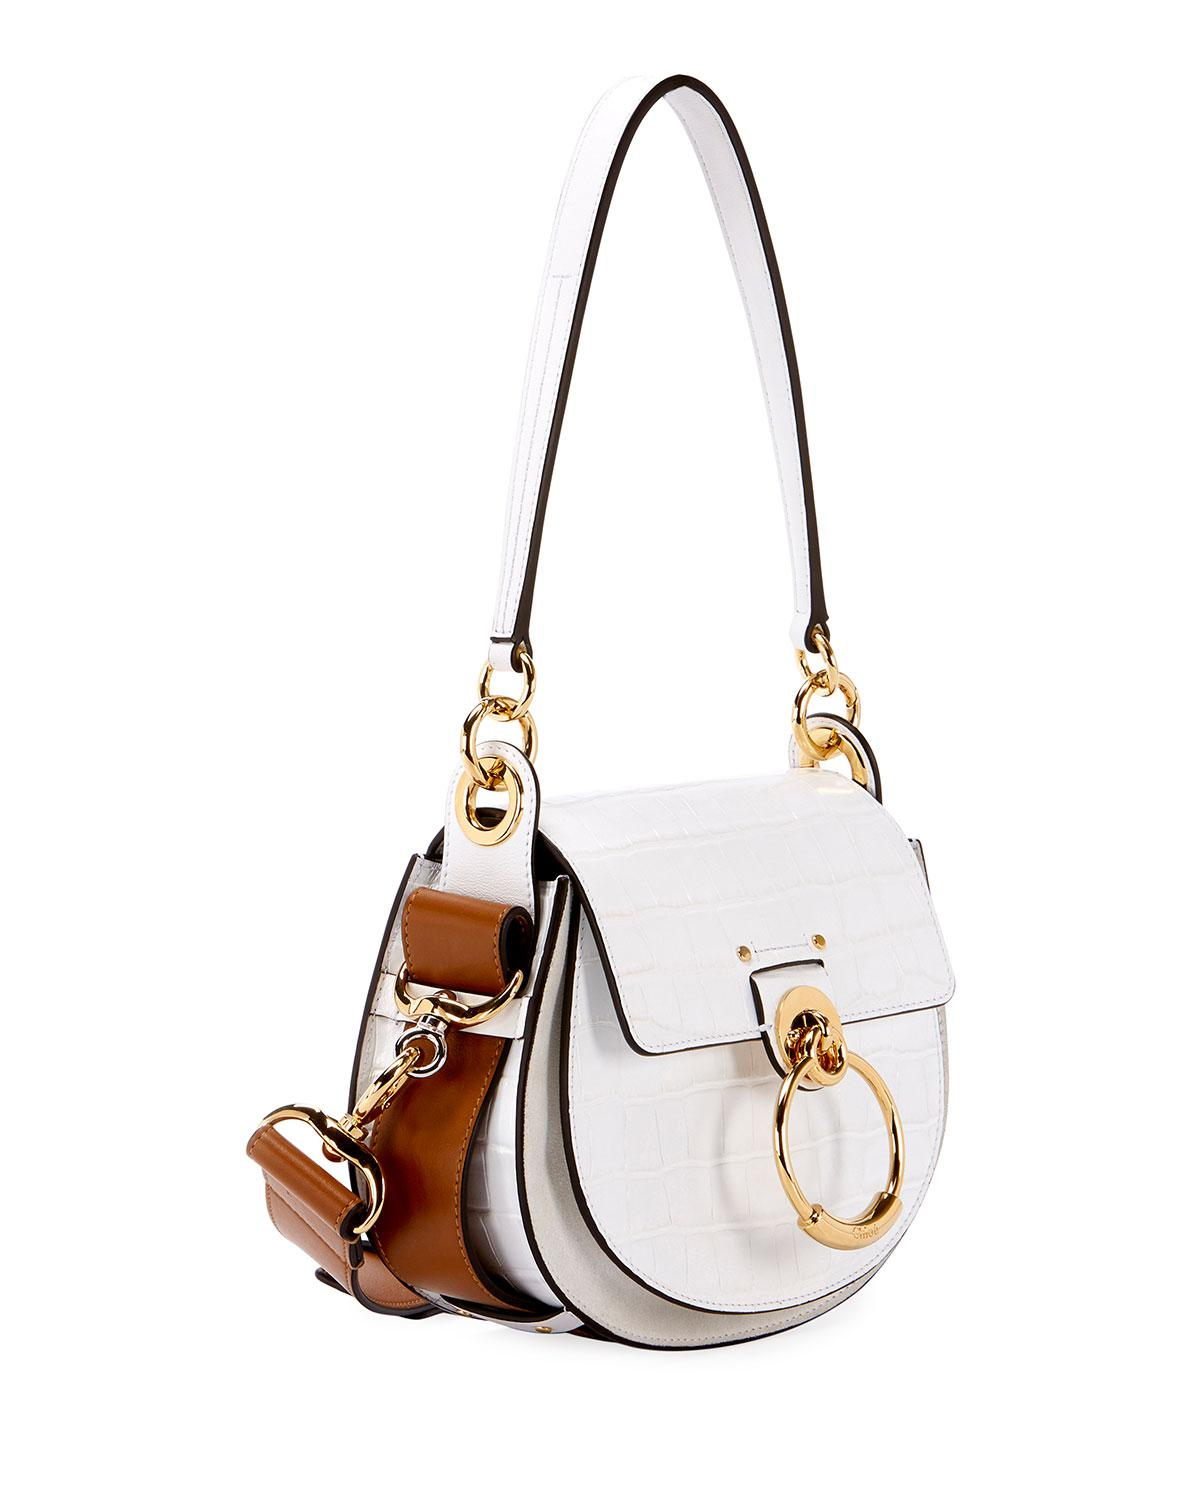 46350d81718 Lyst - Chloé Tess Small Embossed Leather Shoulder Bag in White - Save 24%